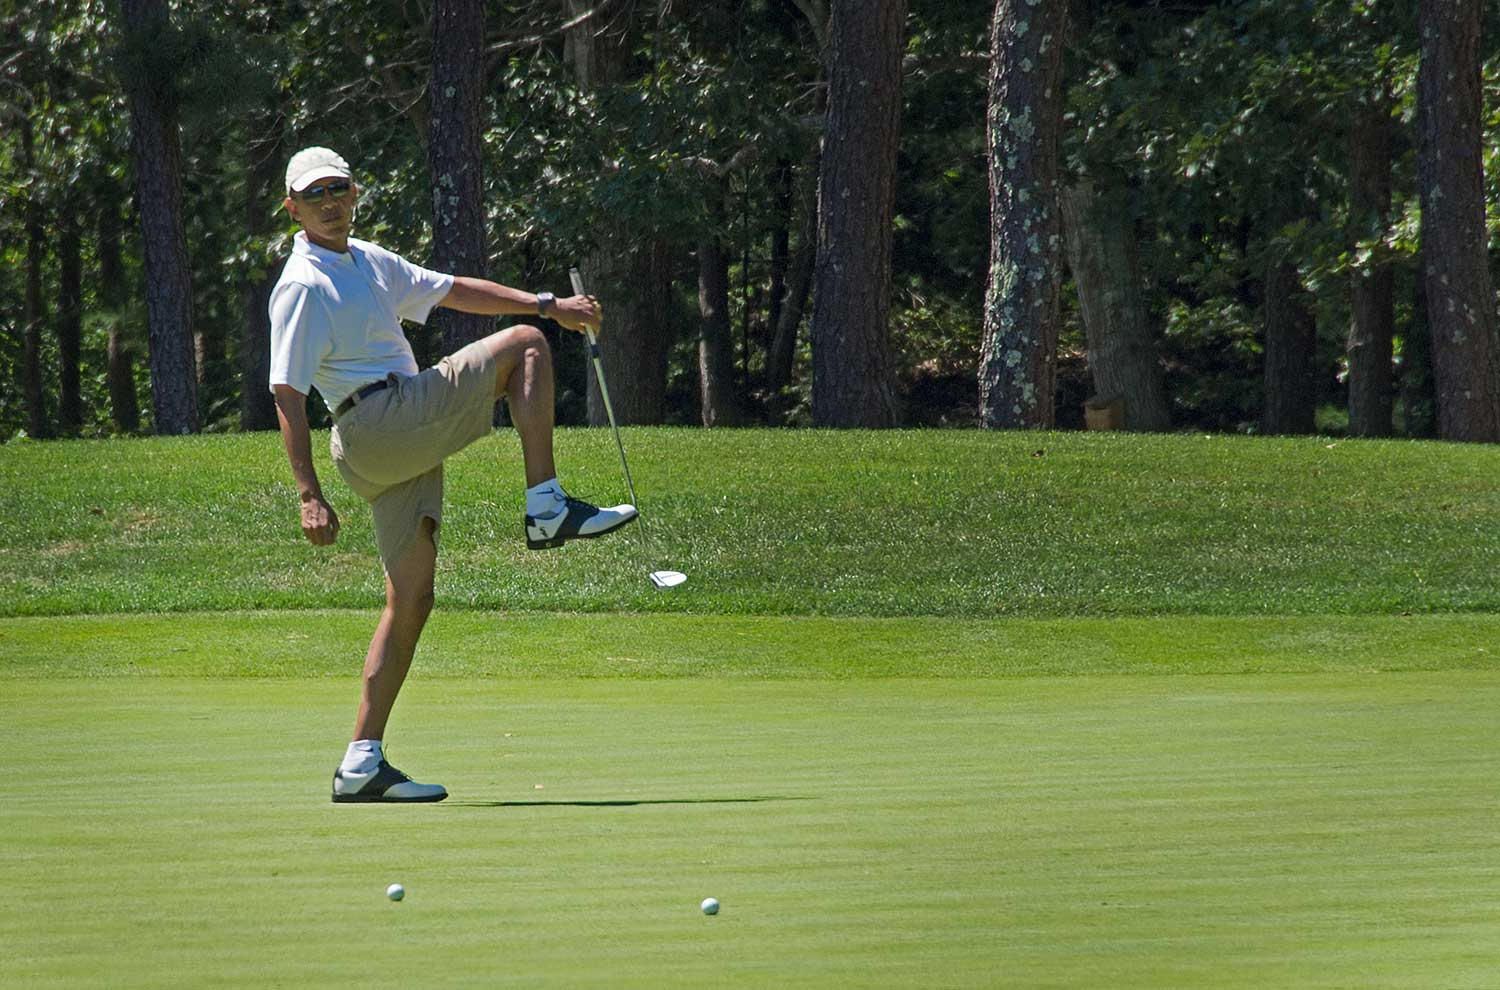 Obama tends to take a winter break in Hawaii, where he was born and raised, and a summer vacation in Martha's Vineyard. In between, he plays basketball and has been known to do some skeet shooting at Camp David. His favorite pastime, no matter the location, has become easy to spot: golf.